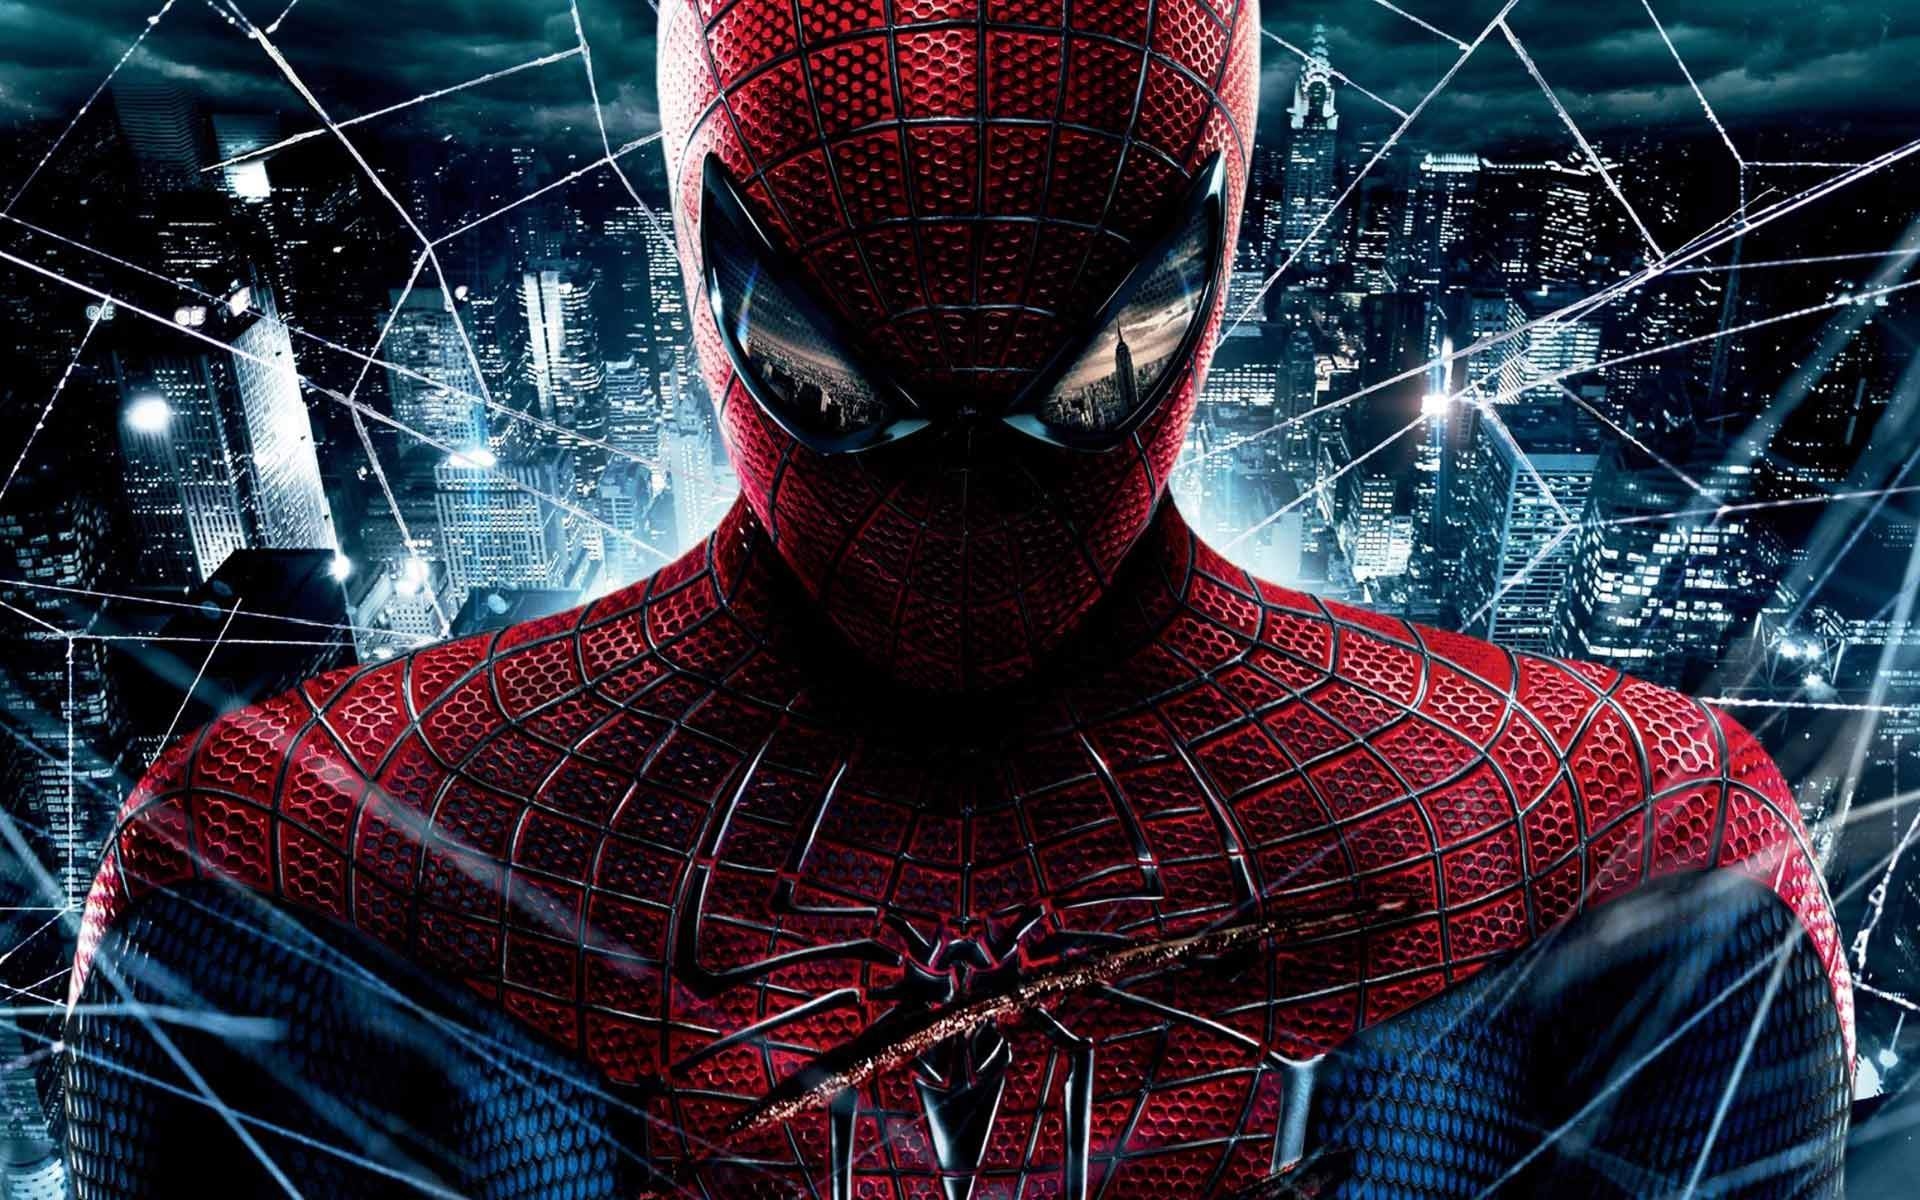 Amazing Spiderman Live Wallpaper For Android The Amazing Spiderman